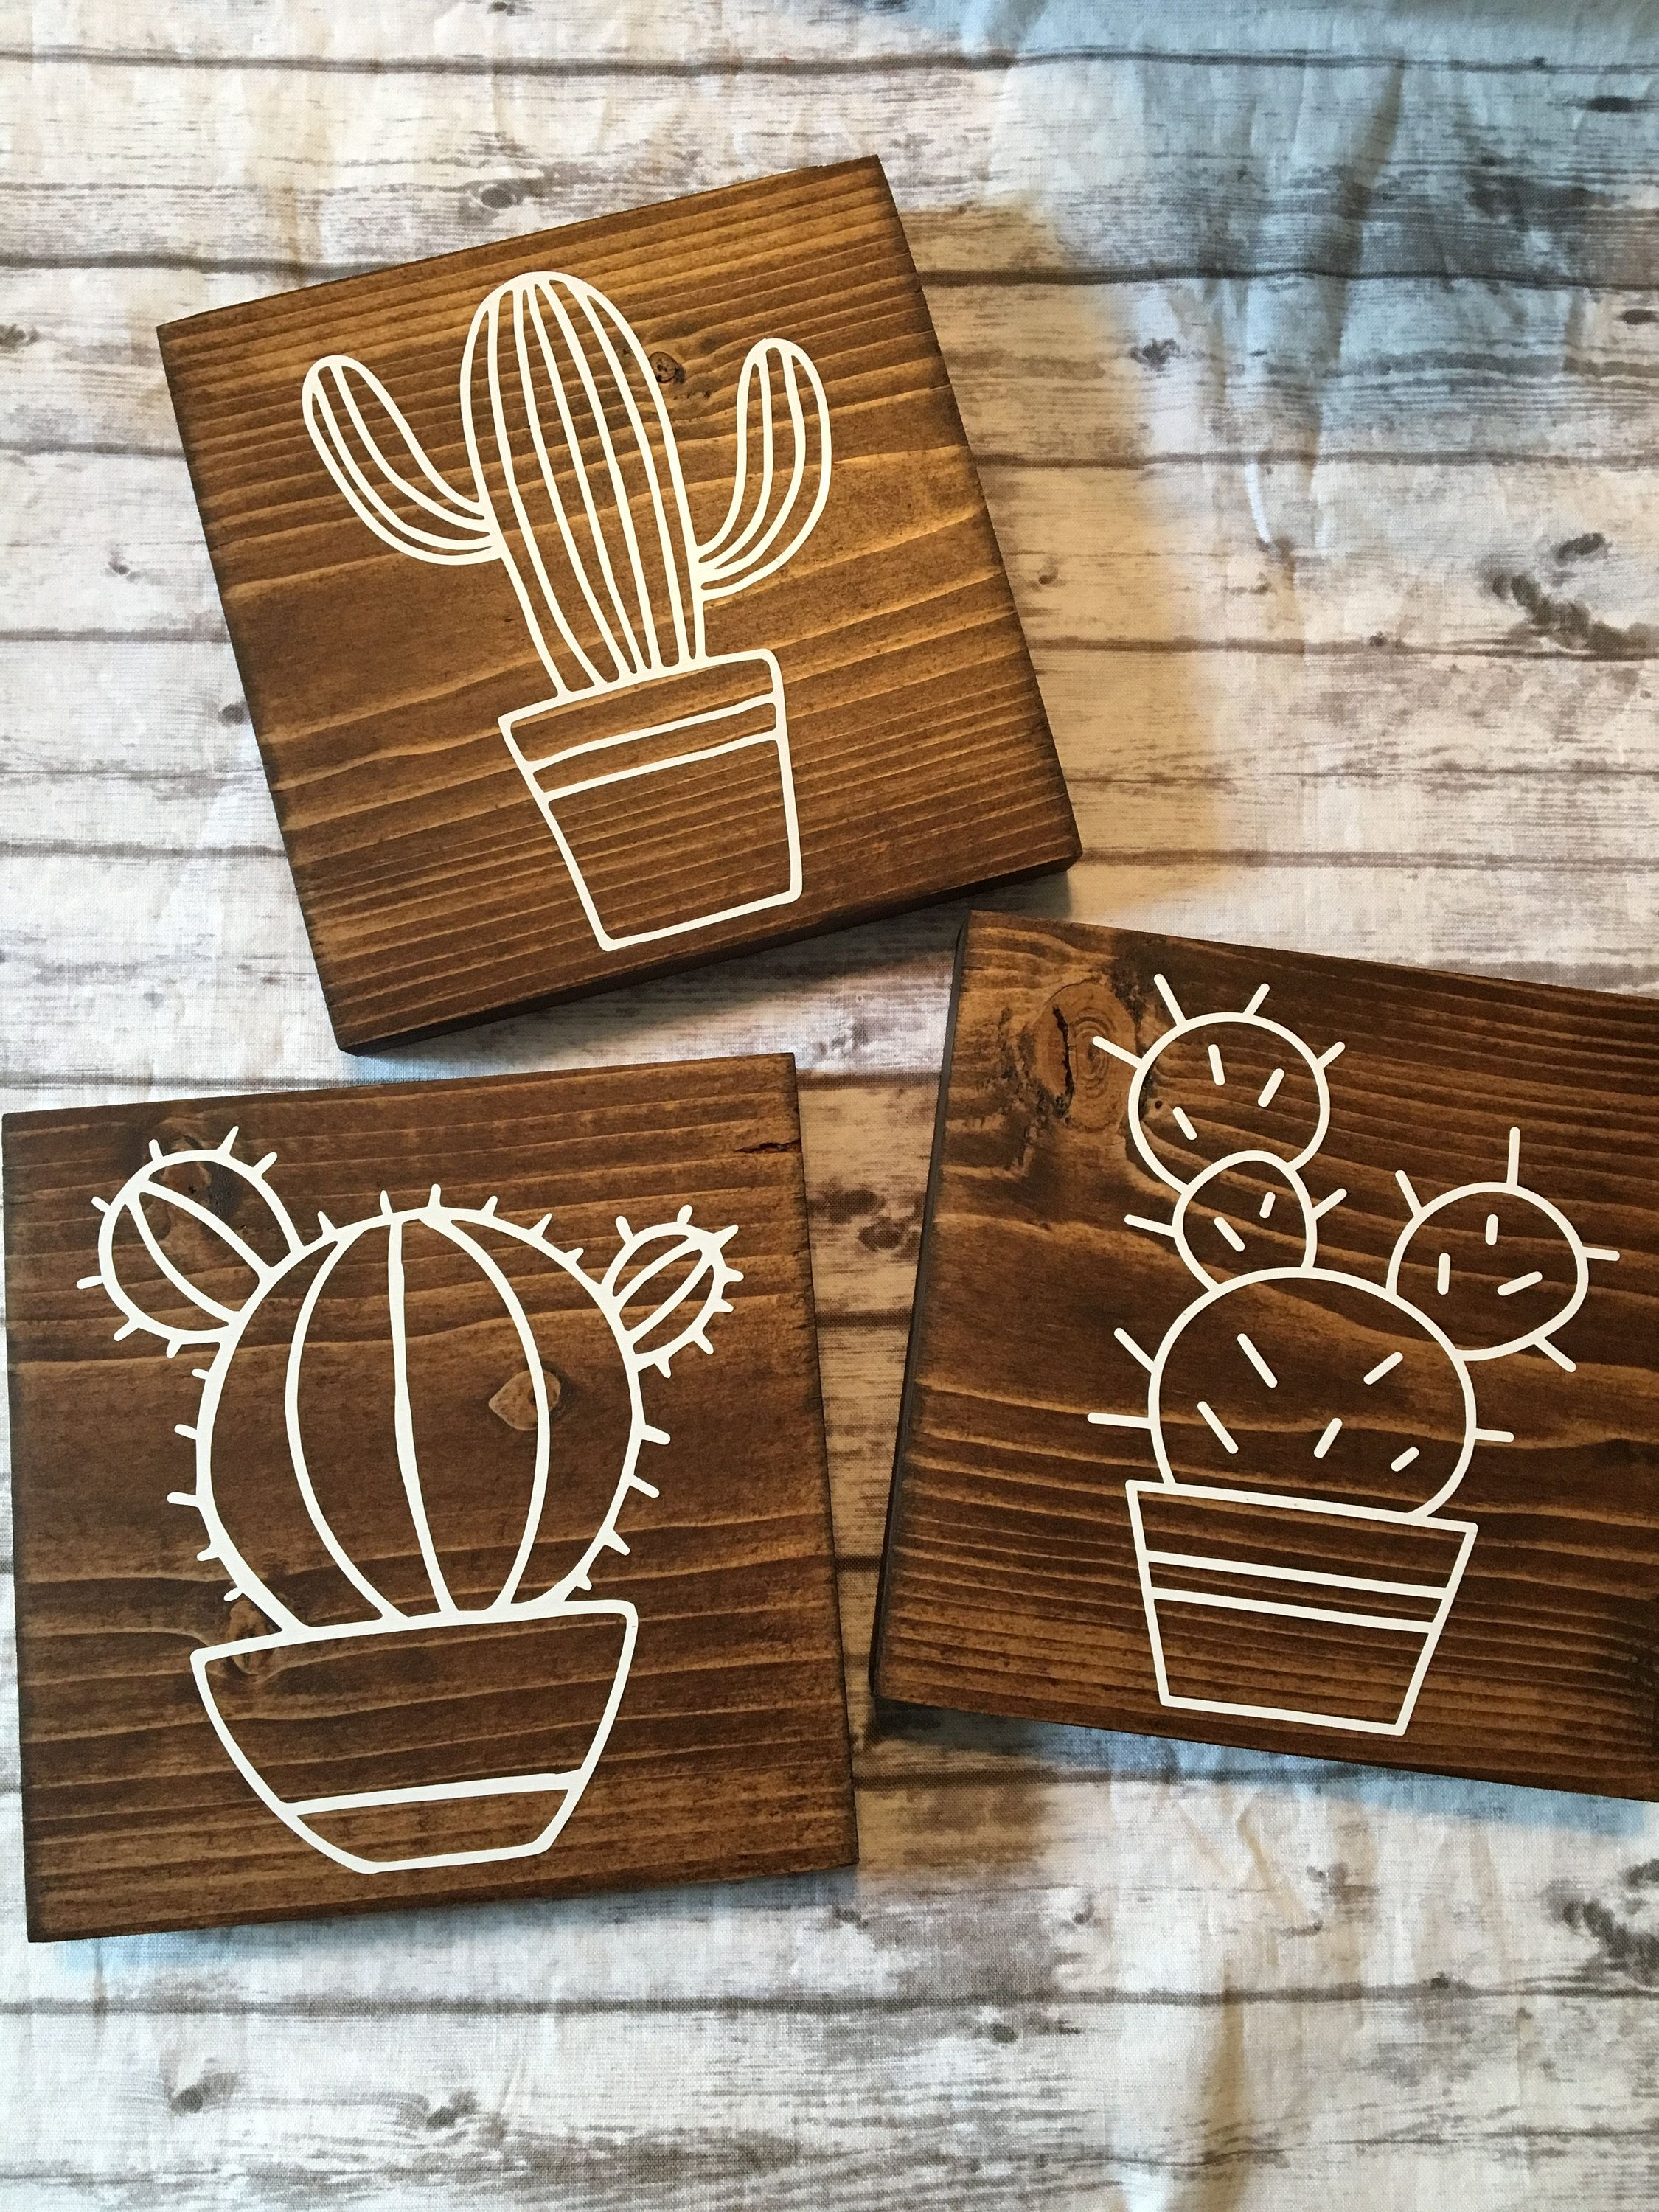 Cactus Wood Signs, 3 piece Cactus Sign, Home Decor